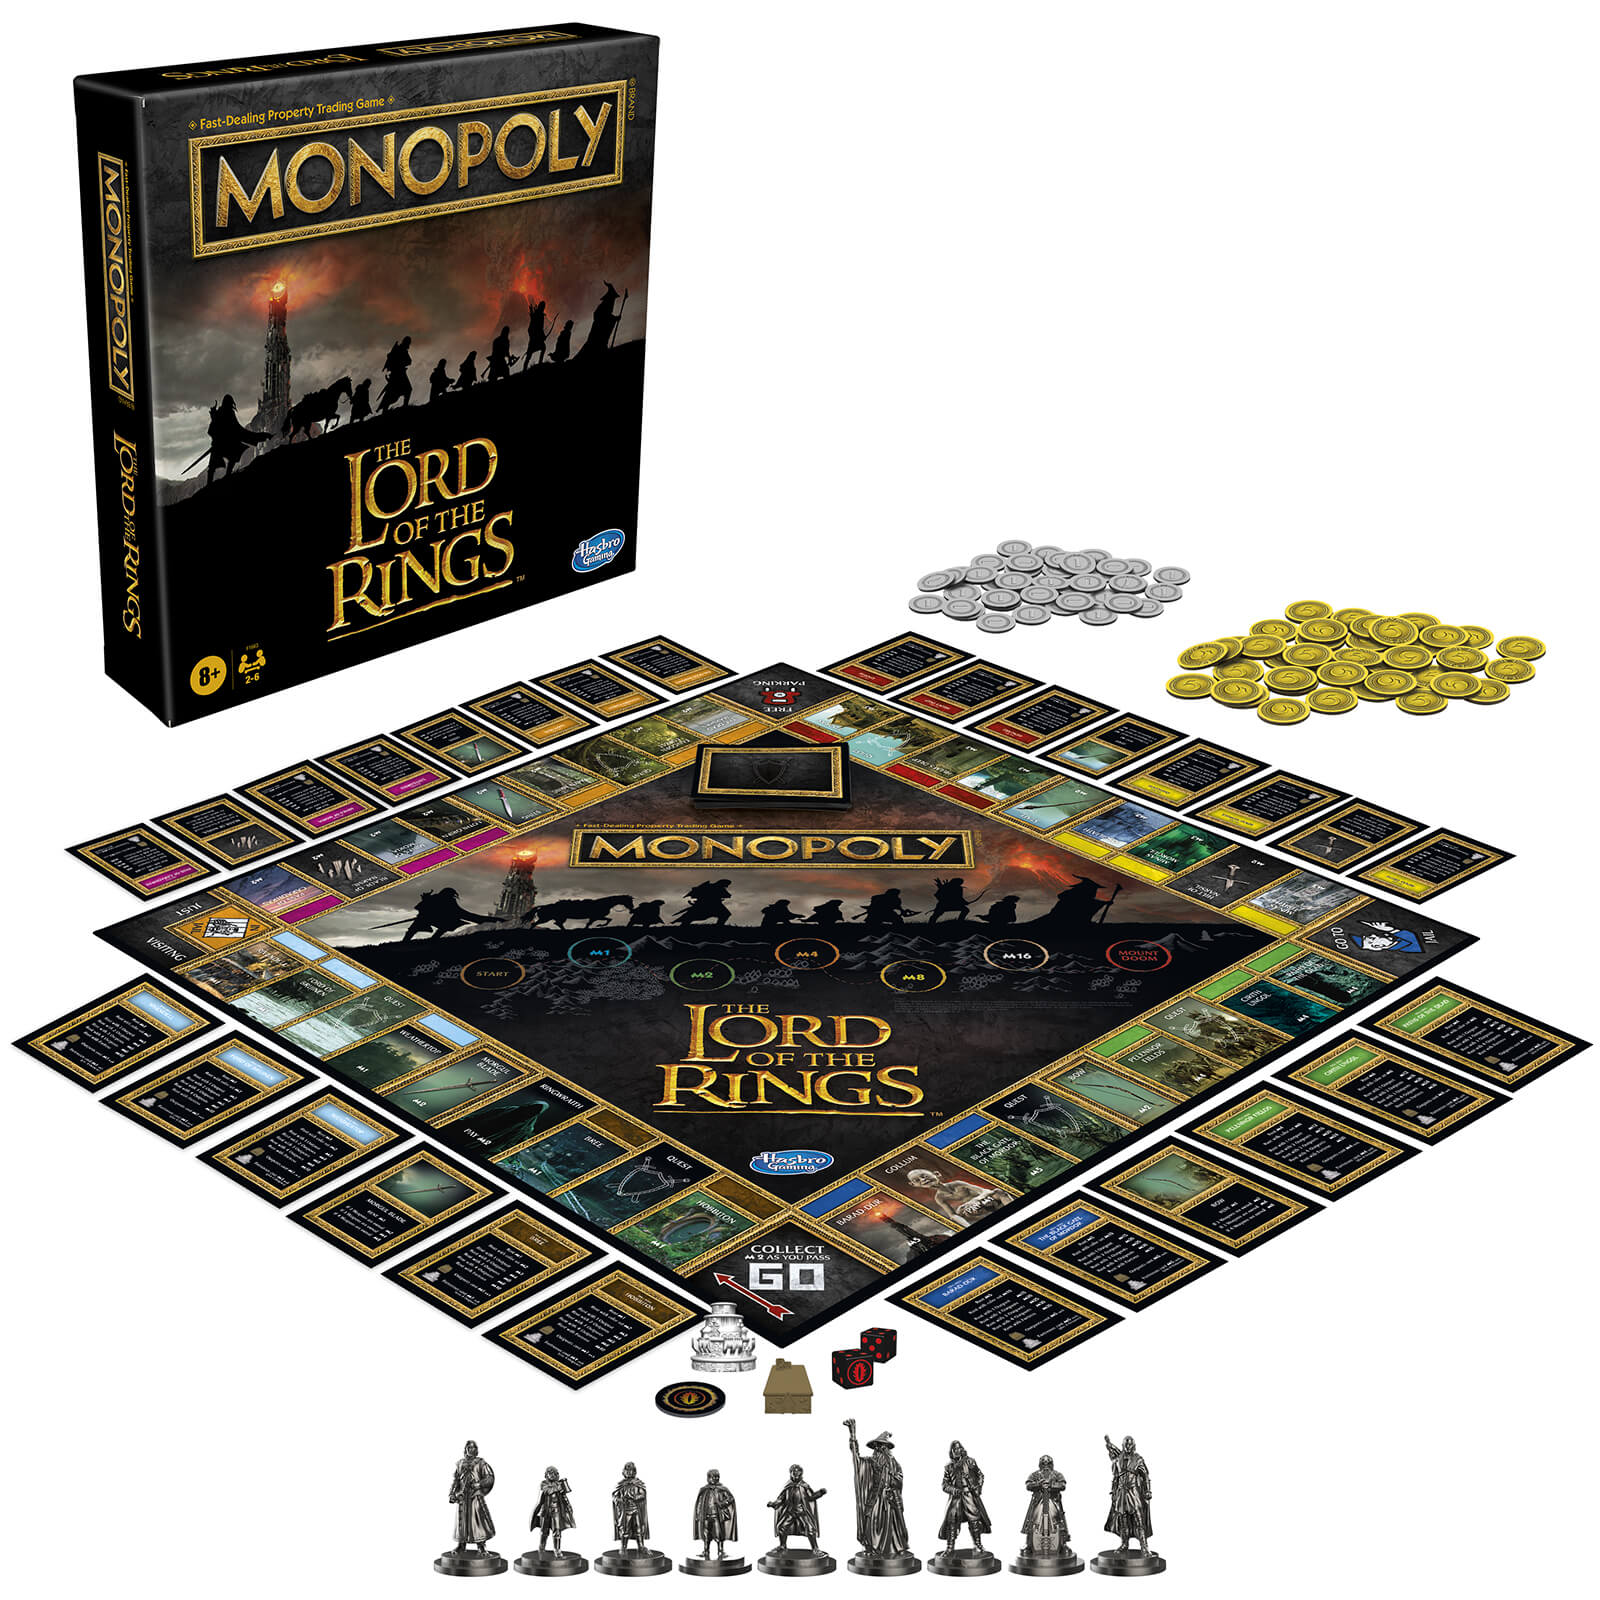 Monopoly Board Game - Lord of the Rings Edition